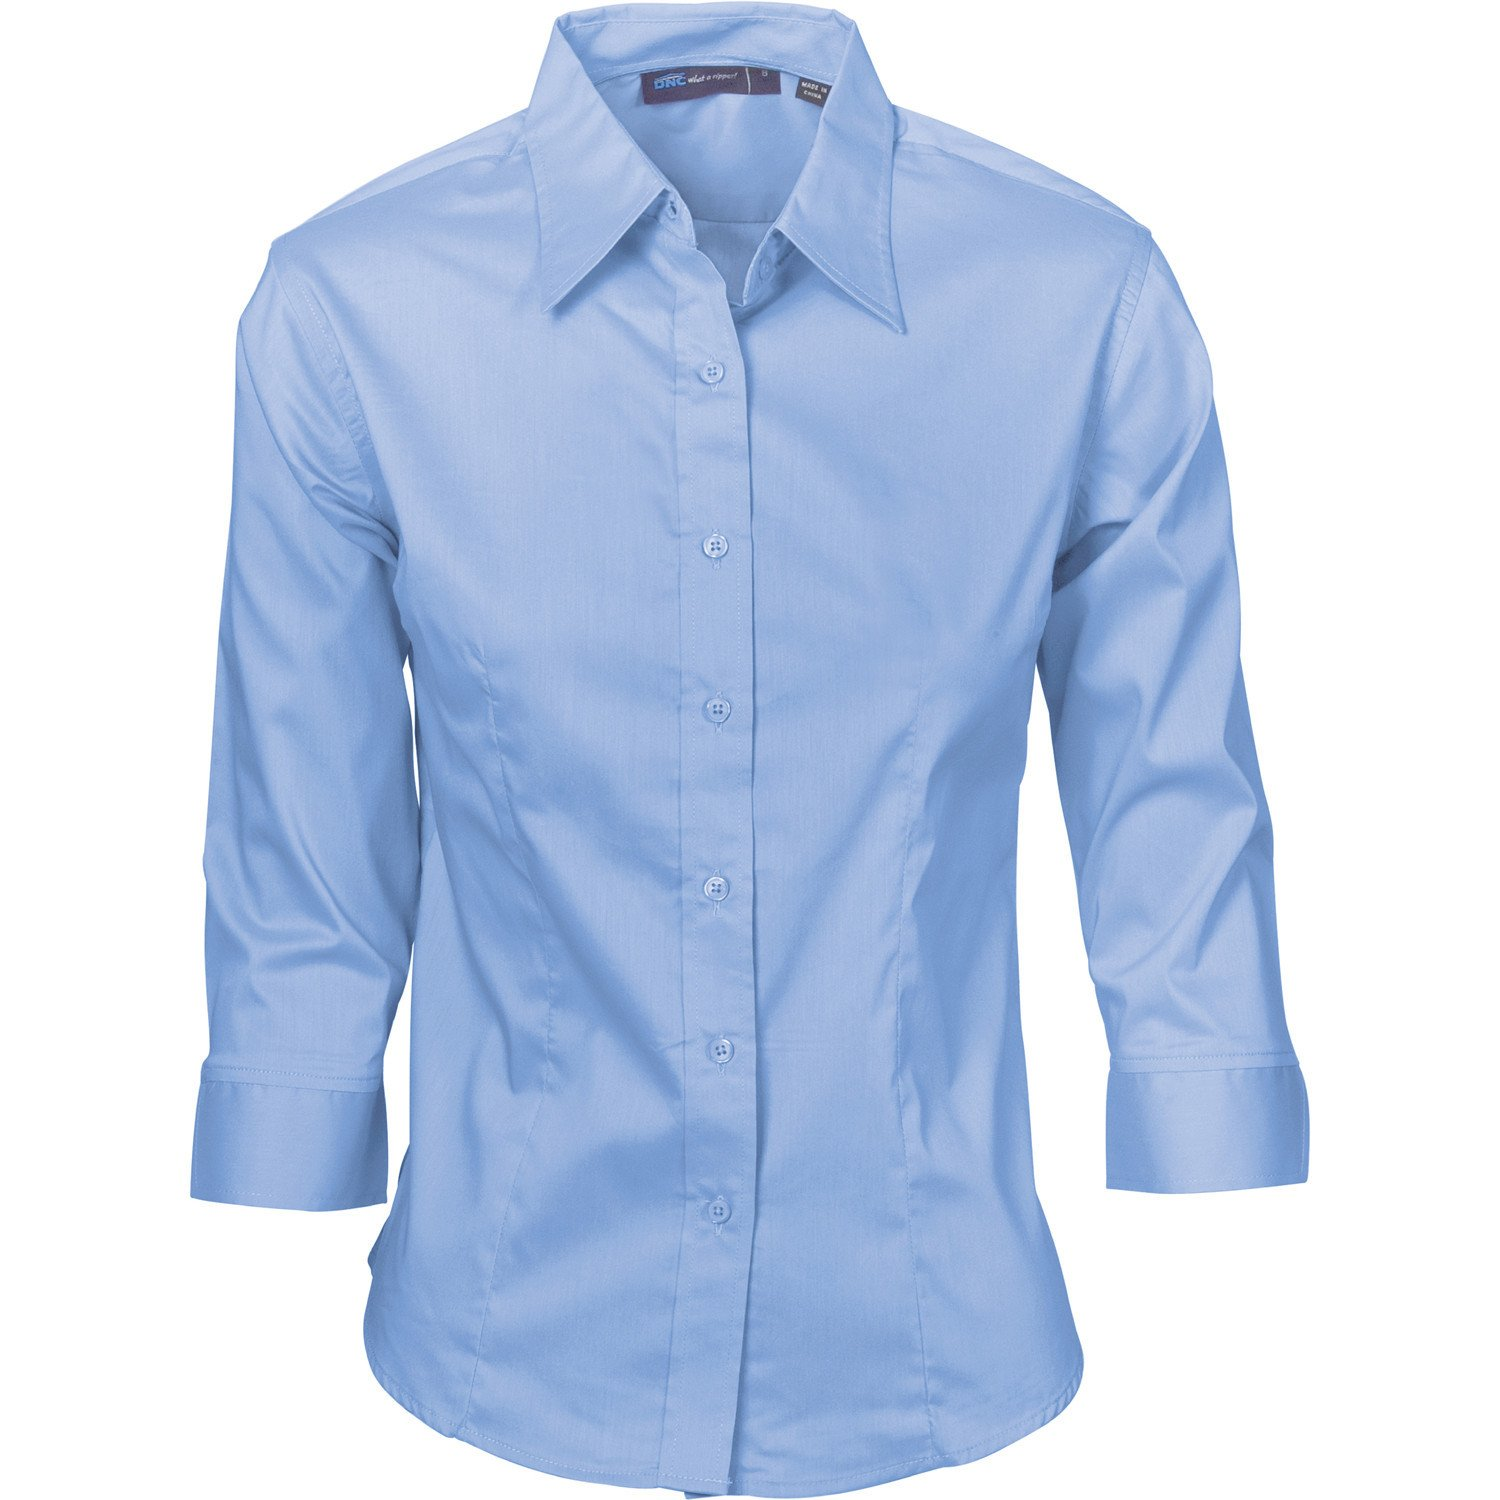 Business Shirts dnc ladies premier stretch poplin 3/4 sleeve business shirts (4232) KLEZGZN